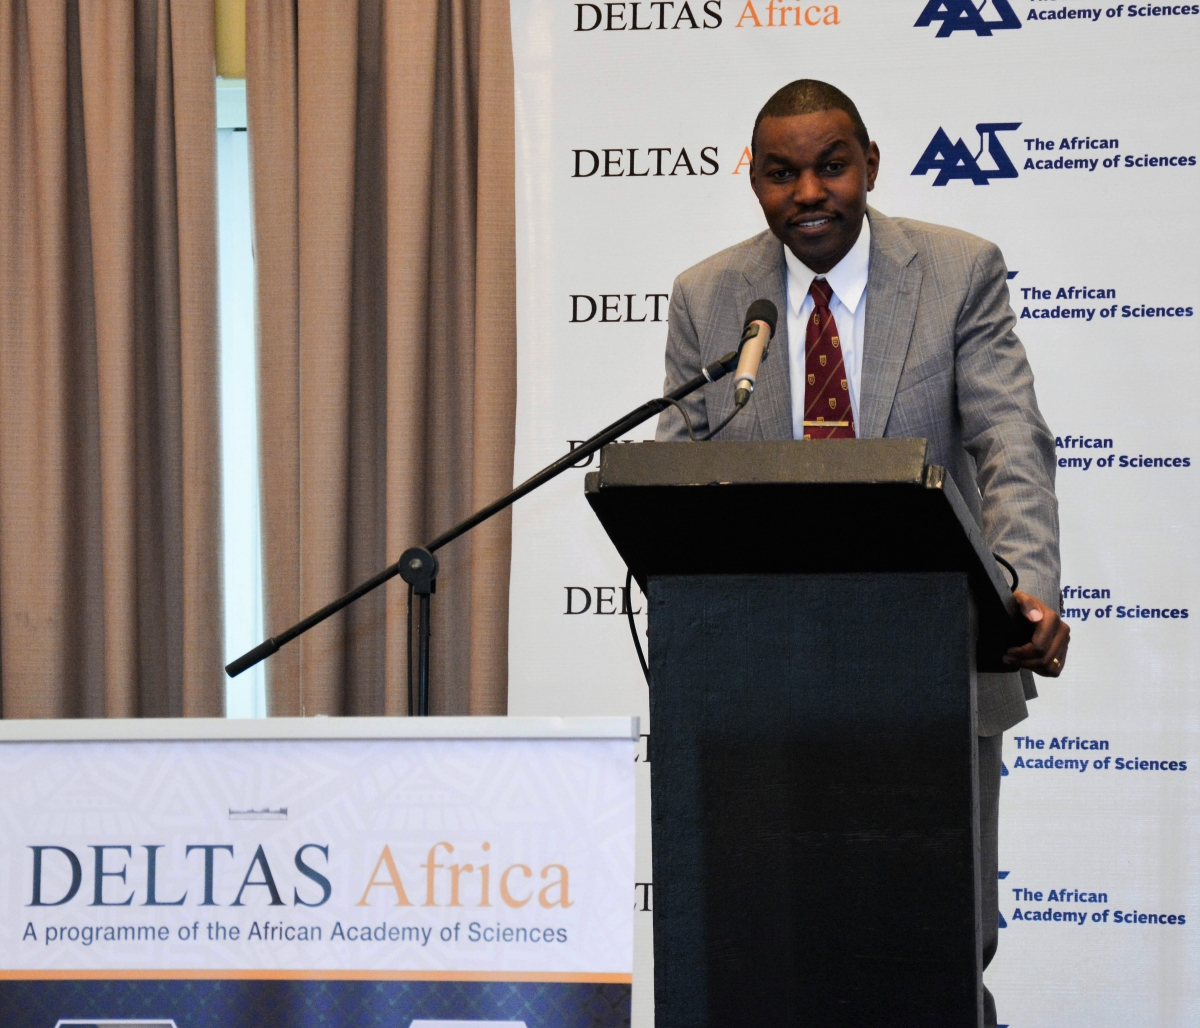 SANTHE Programme Director, Professor Thumbi Ndung'u, reports on SANTHE's progress at DELTAS Africa.